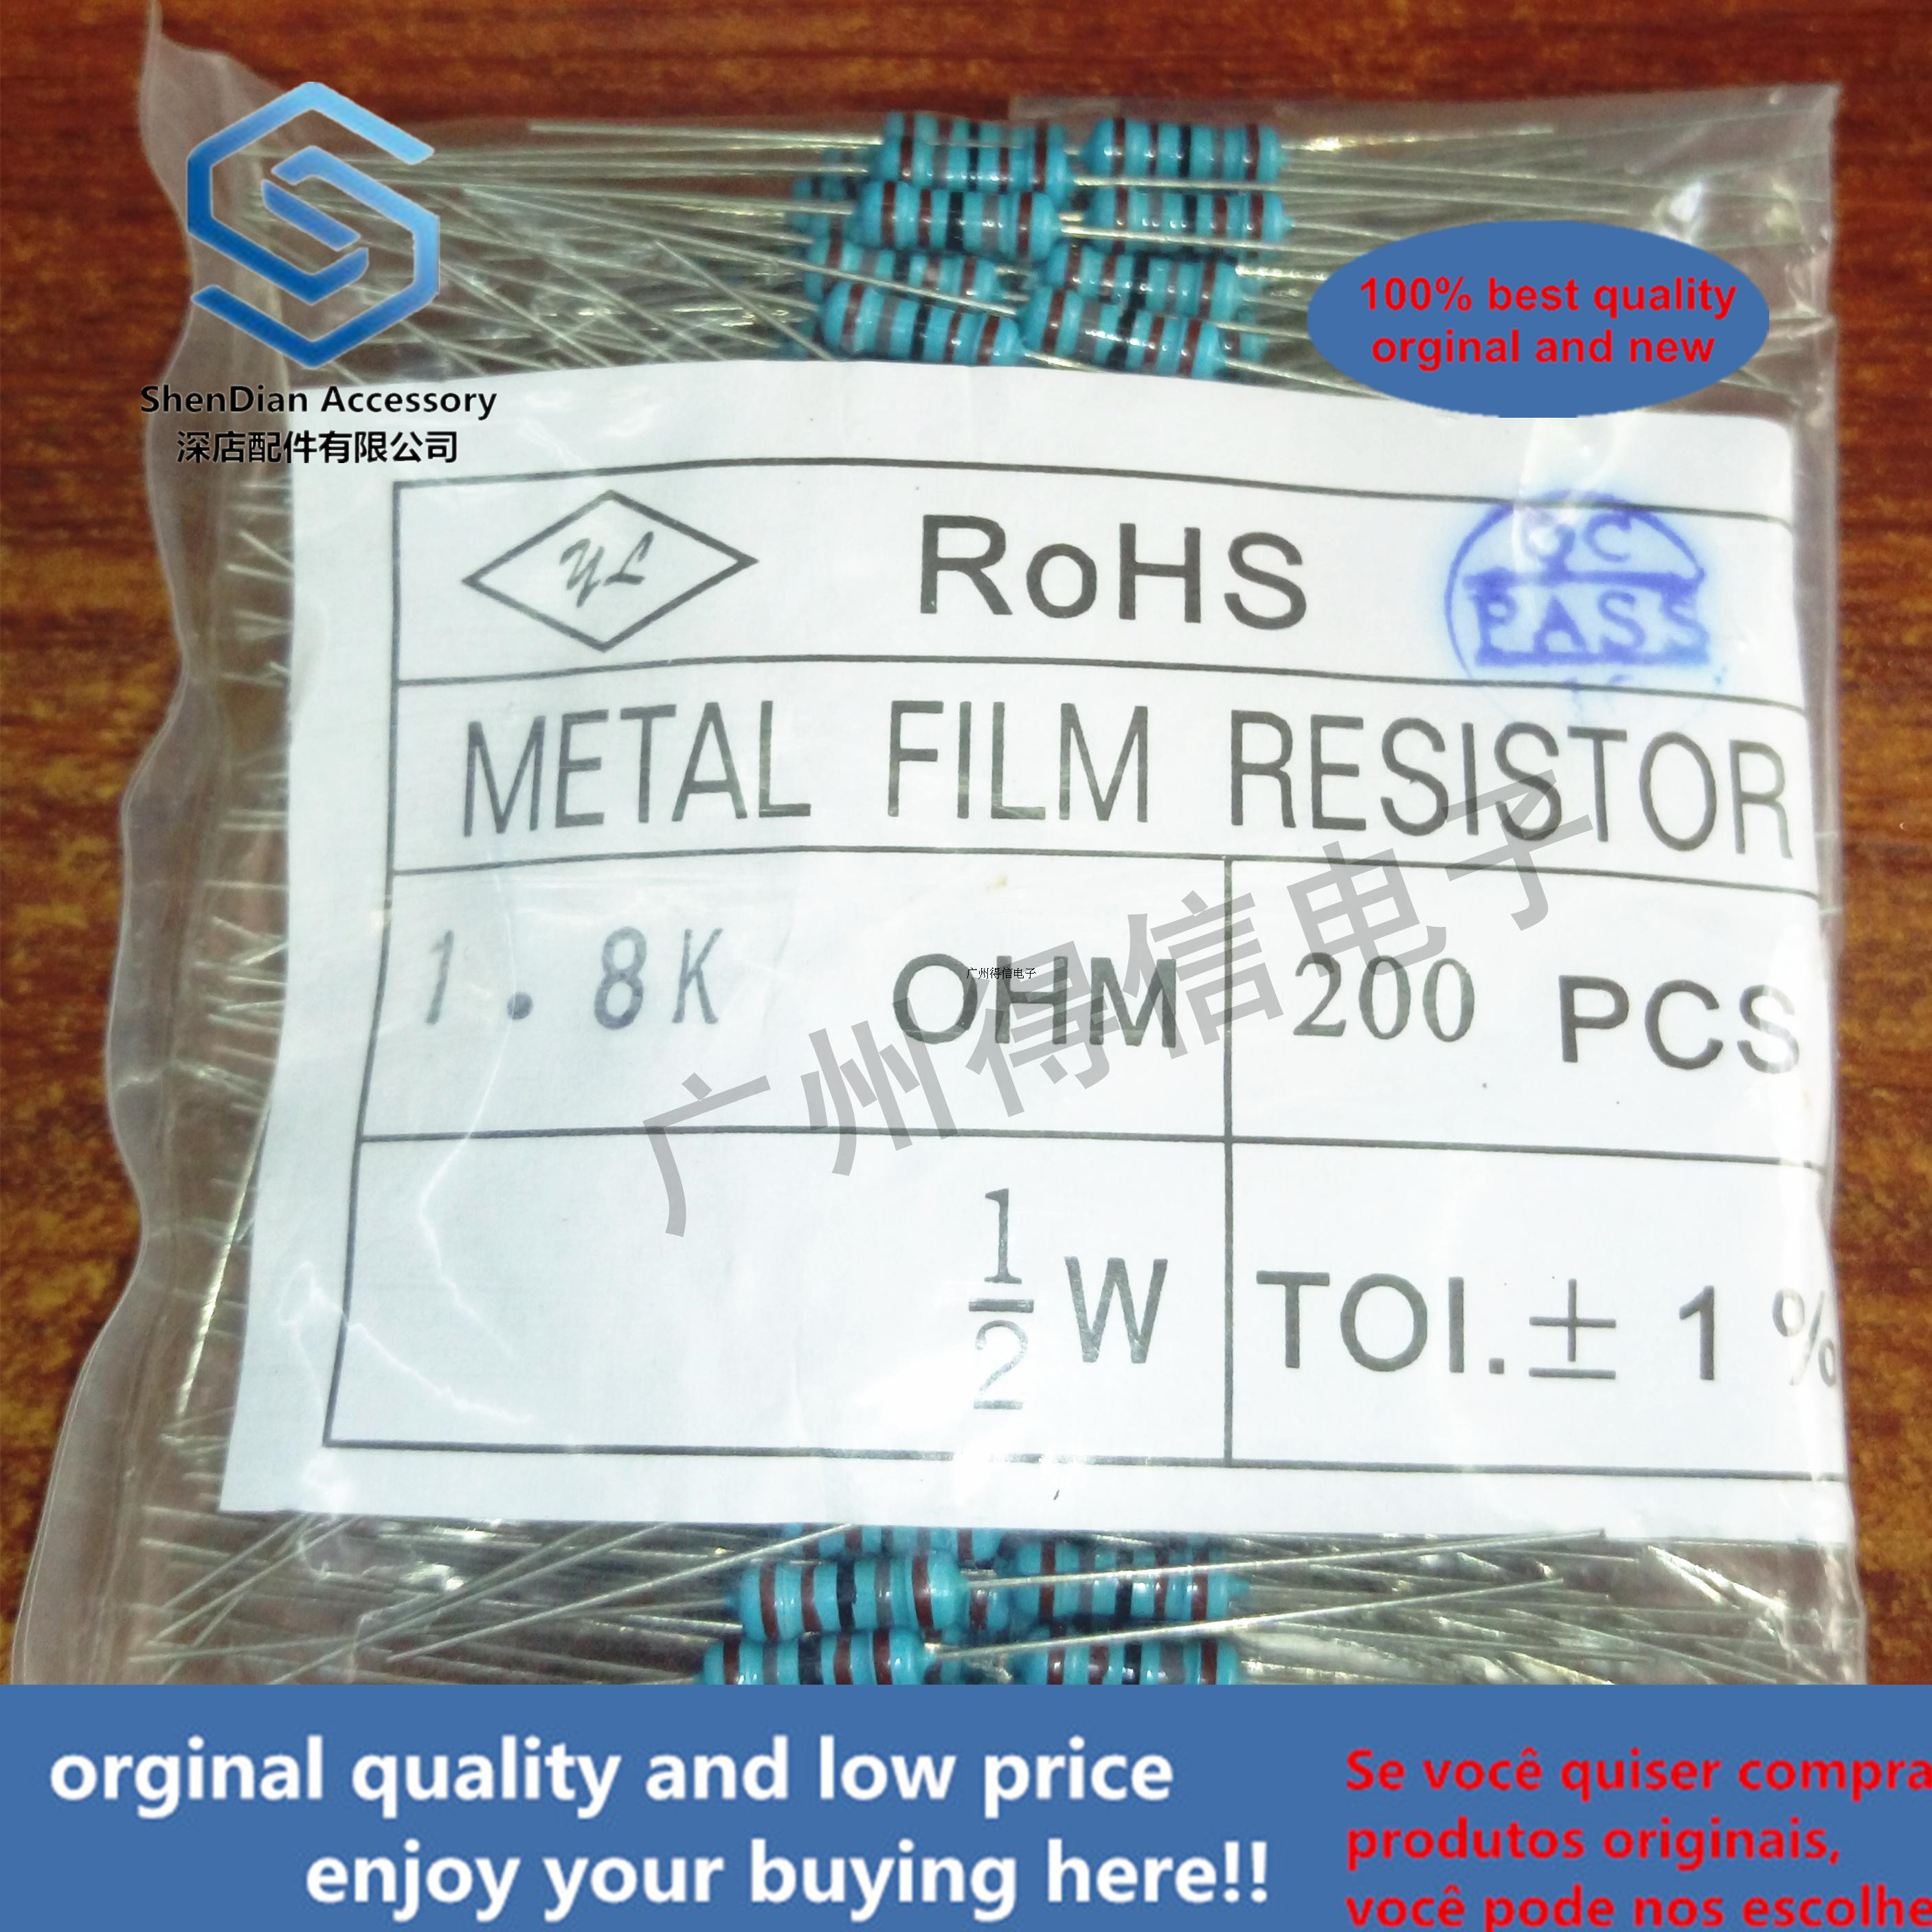 200pcs 1 / 2W 820R 820 Euro 1% Brand New Metal Film Iron Foot Resistor Bag Pack Of 200